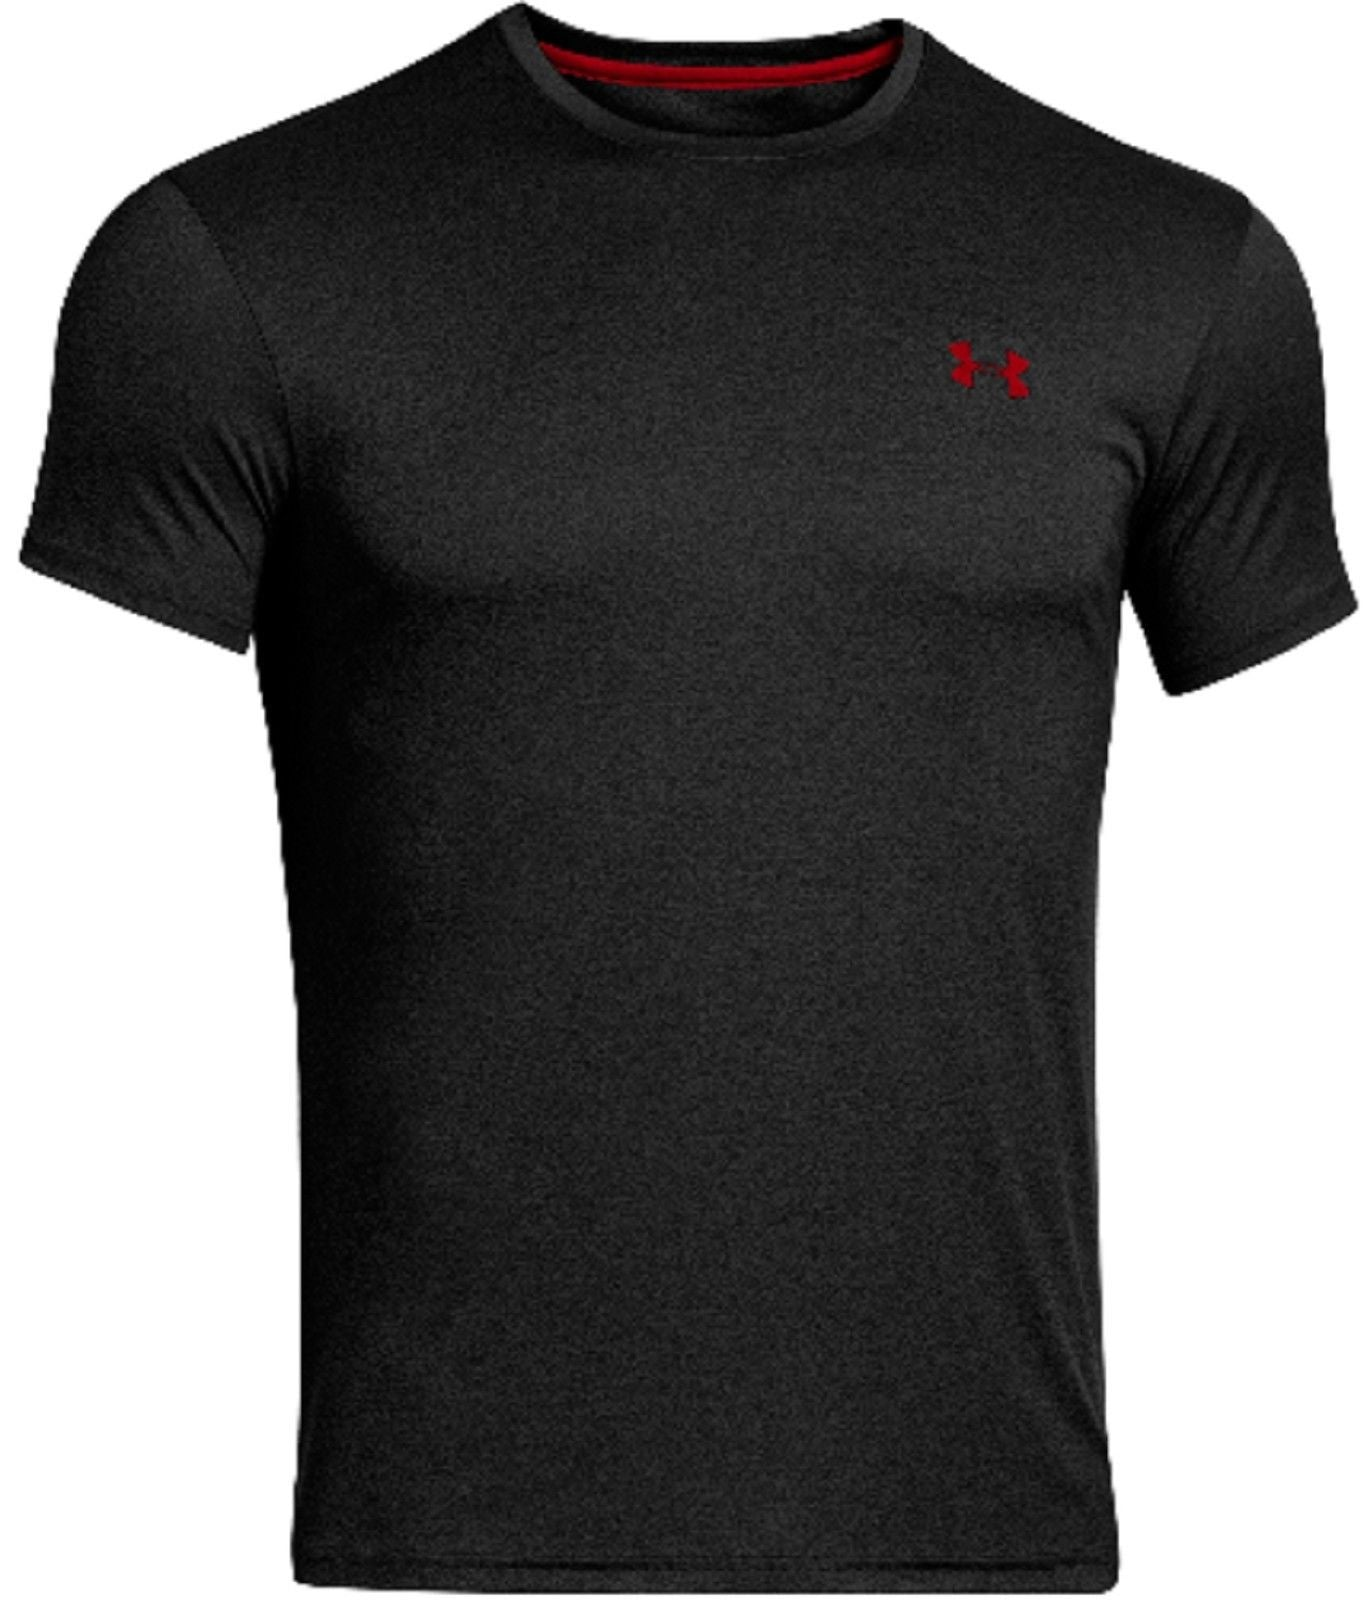 aa33b03cde1 ... Under Armour Men s Original Fitted Crew Flyweight T-Shirt - Black or  White UA White Black